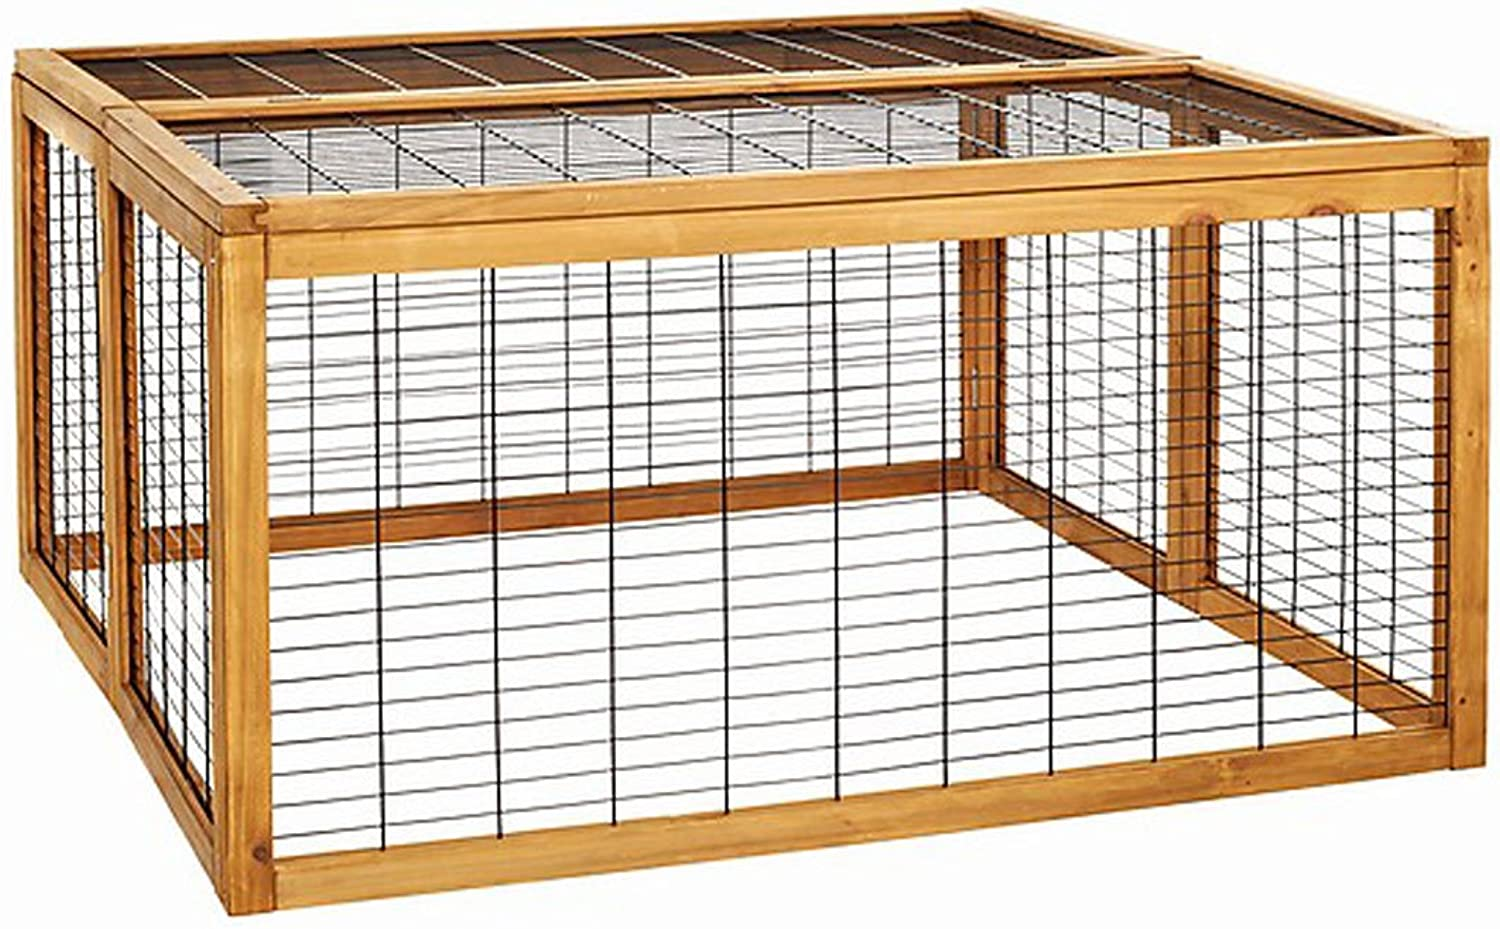 Dehner Rolf Open Enclosure with FoldOut Roof Approx. 116 x 116 x 58 cm Wooden